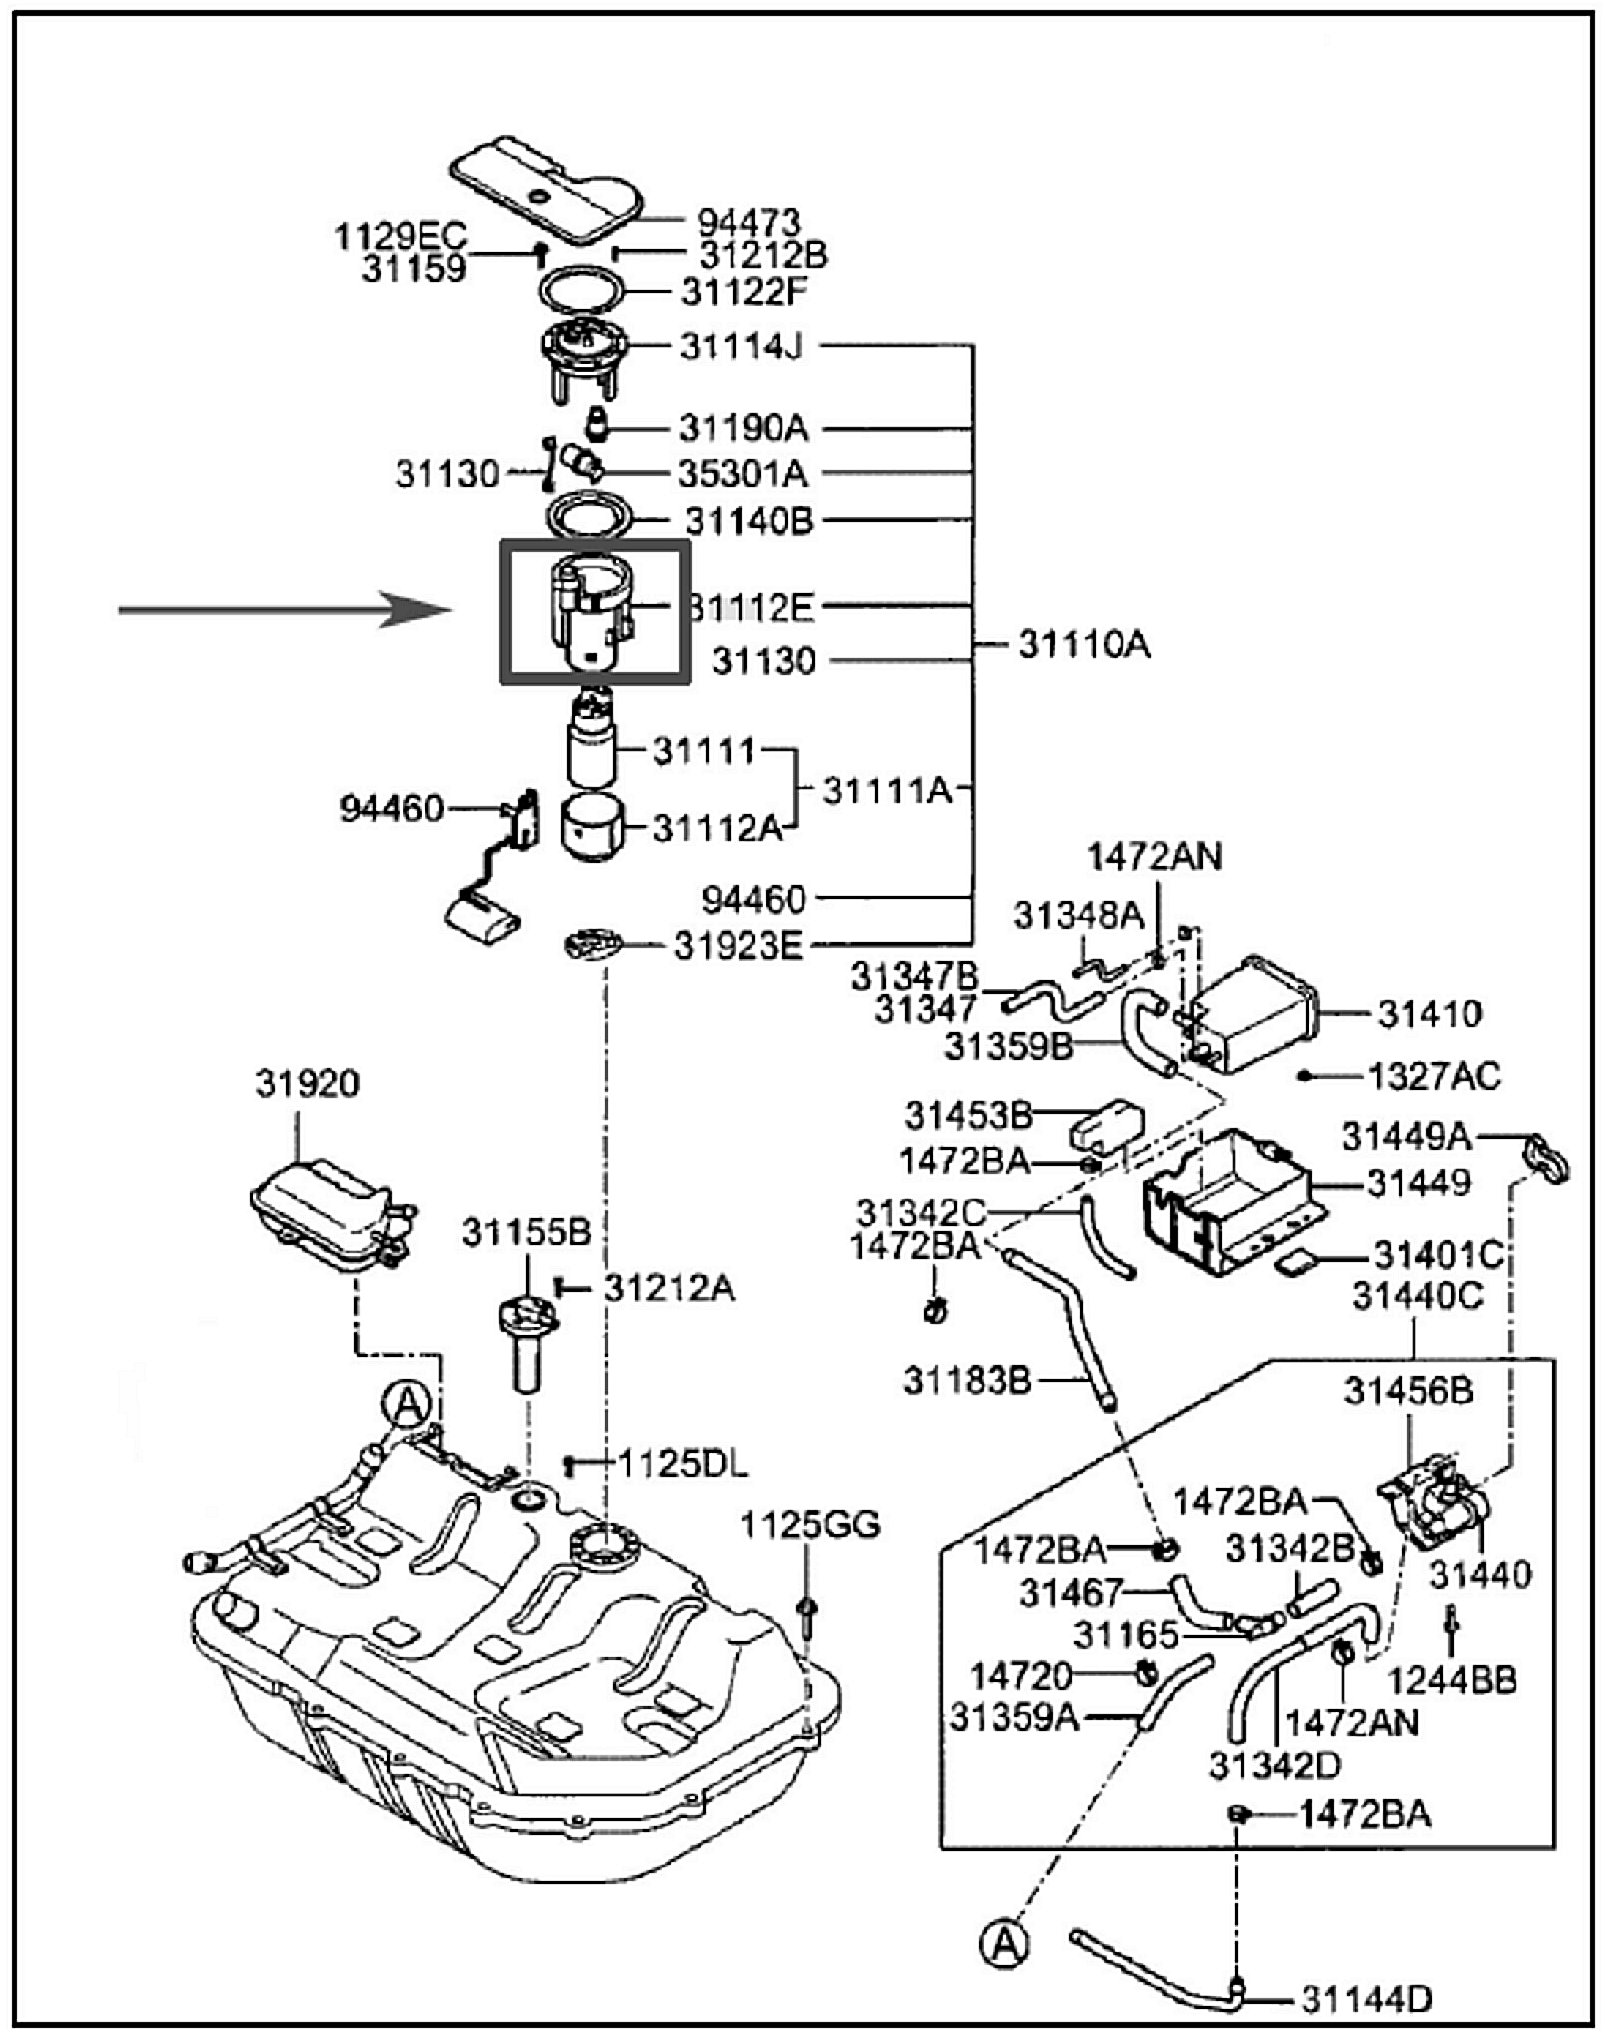 2000 Hyundai Sonata Fuel Filter Location      Wiring       Diagram